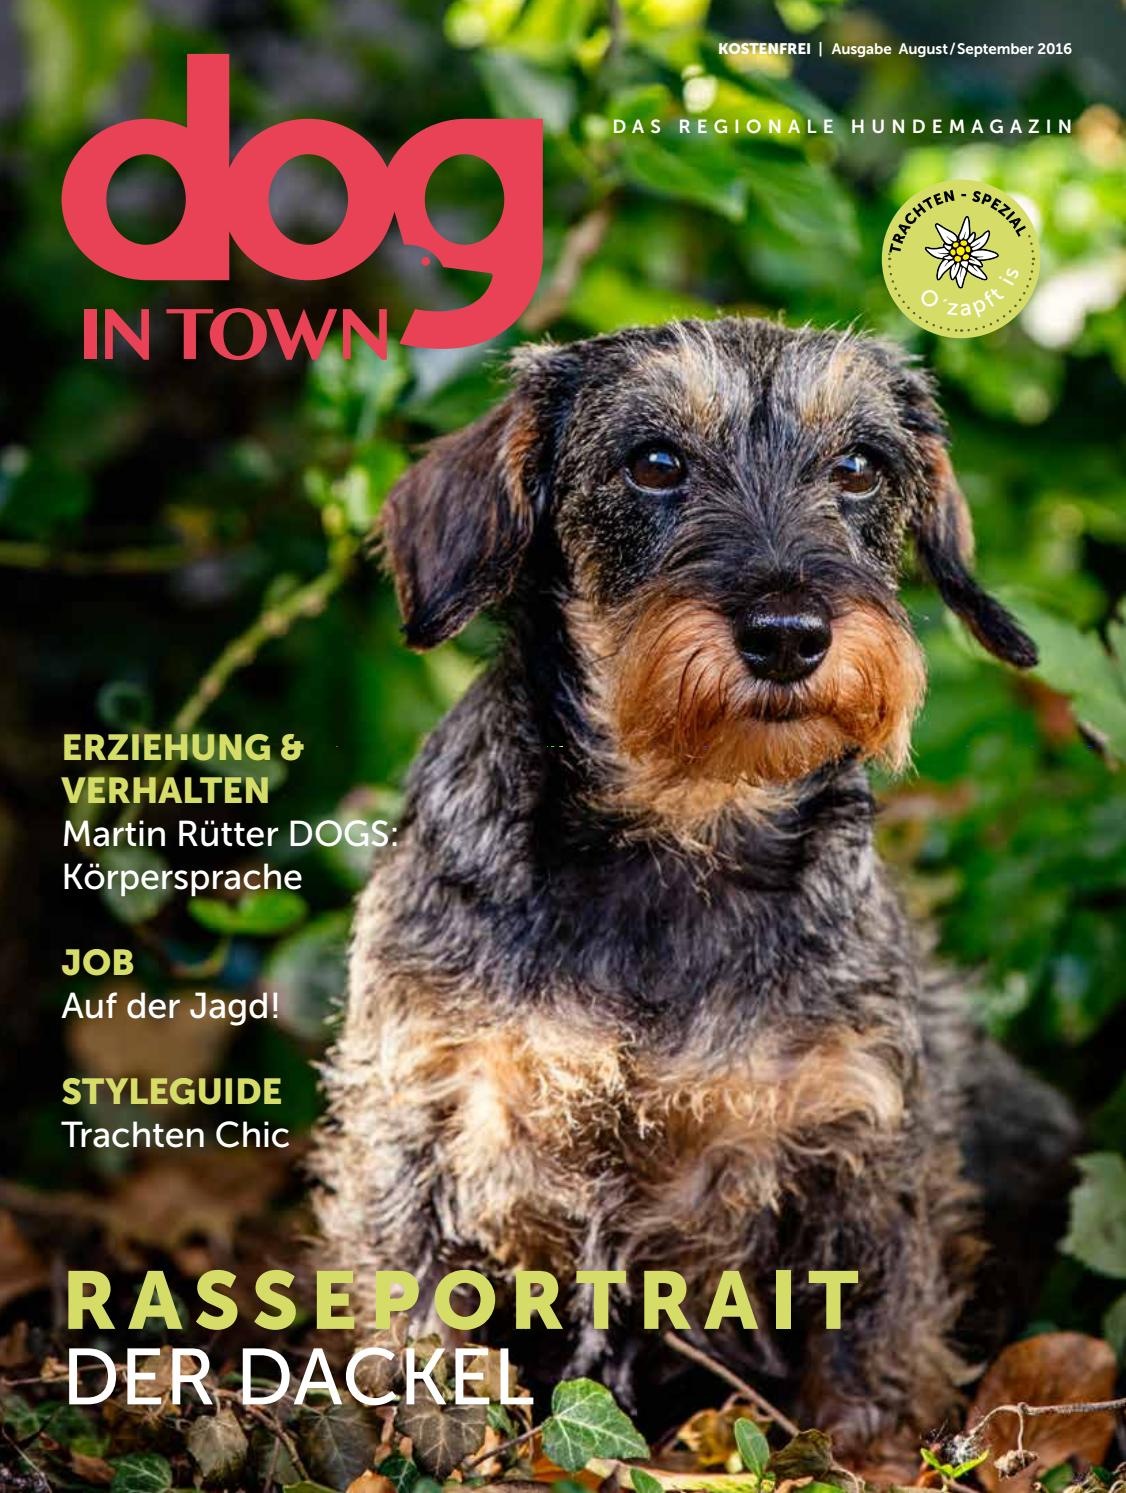 dog IN TOWN Ausgabe 03 | August/September 2016 by dog IN TOWN - issuu